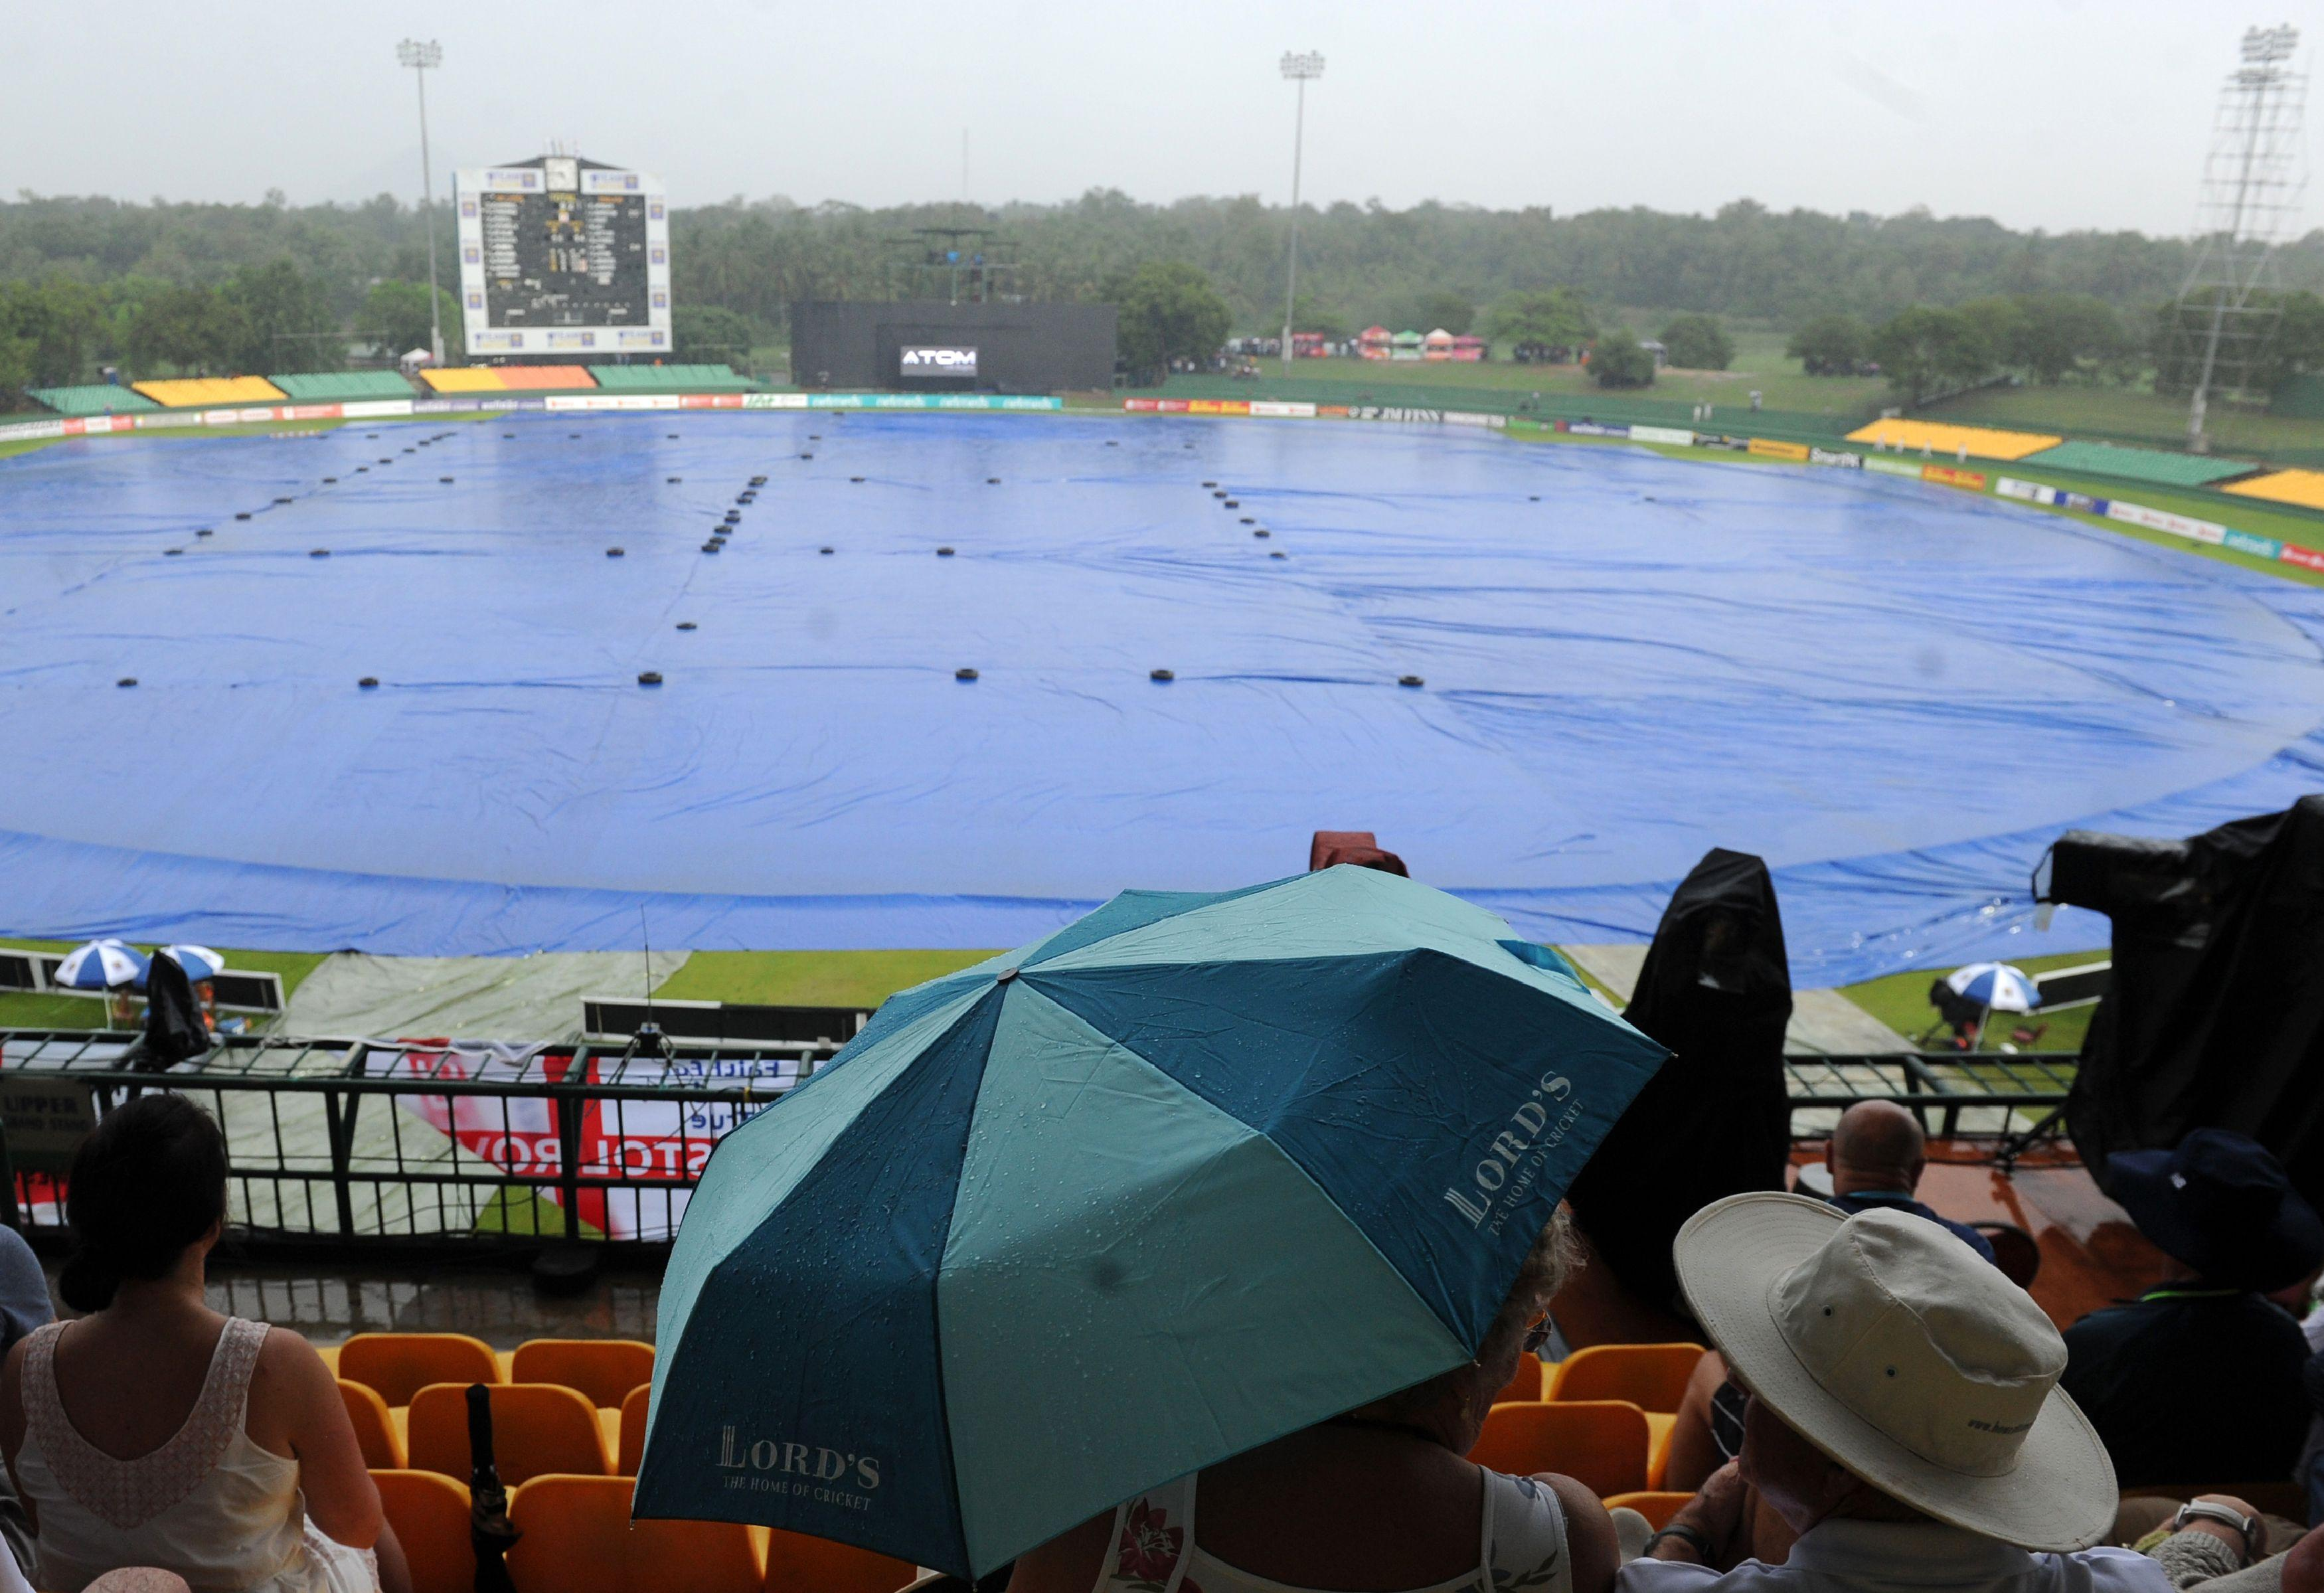 The first ODI between England and Sri Lanka has been abandoned due to rain